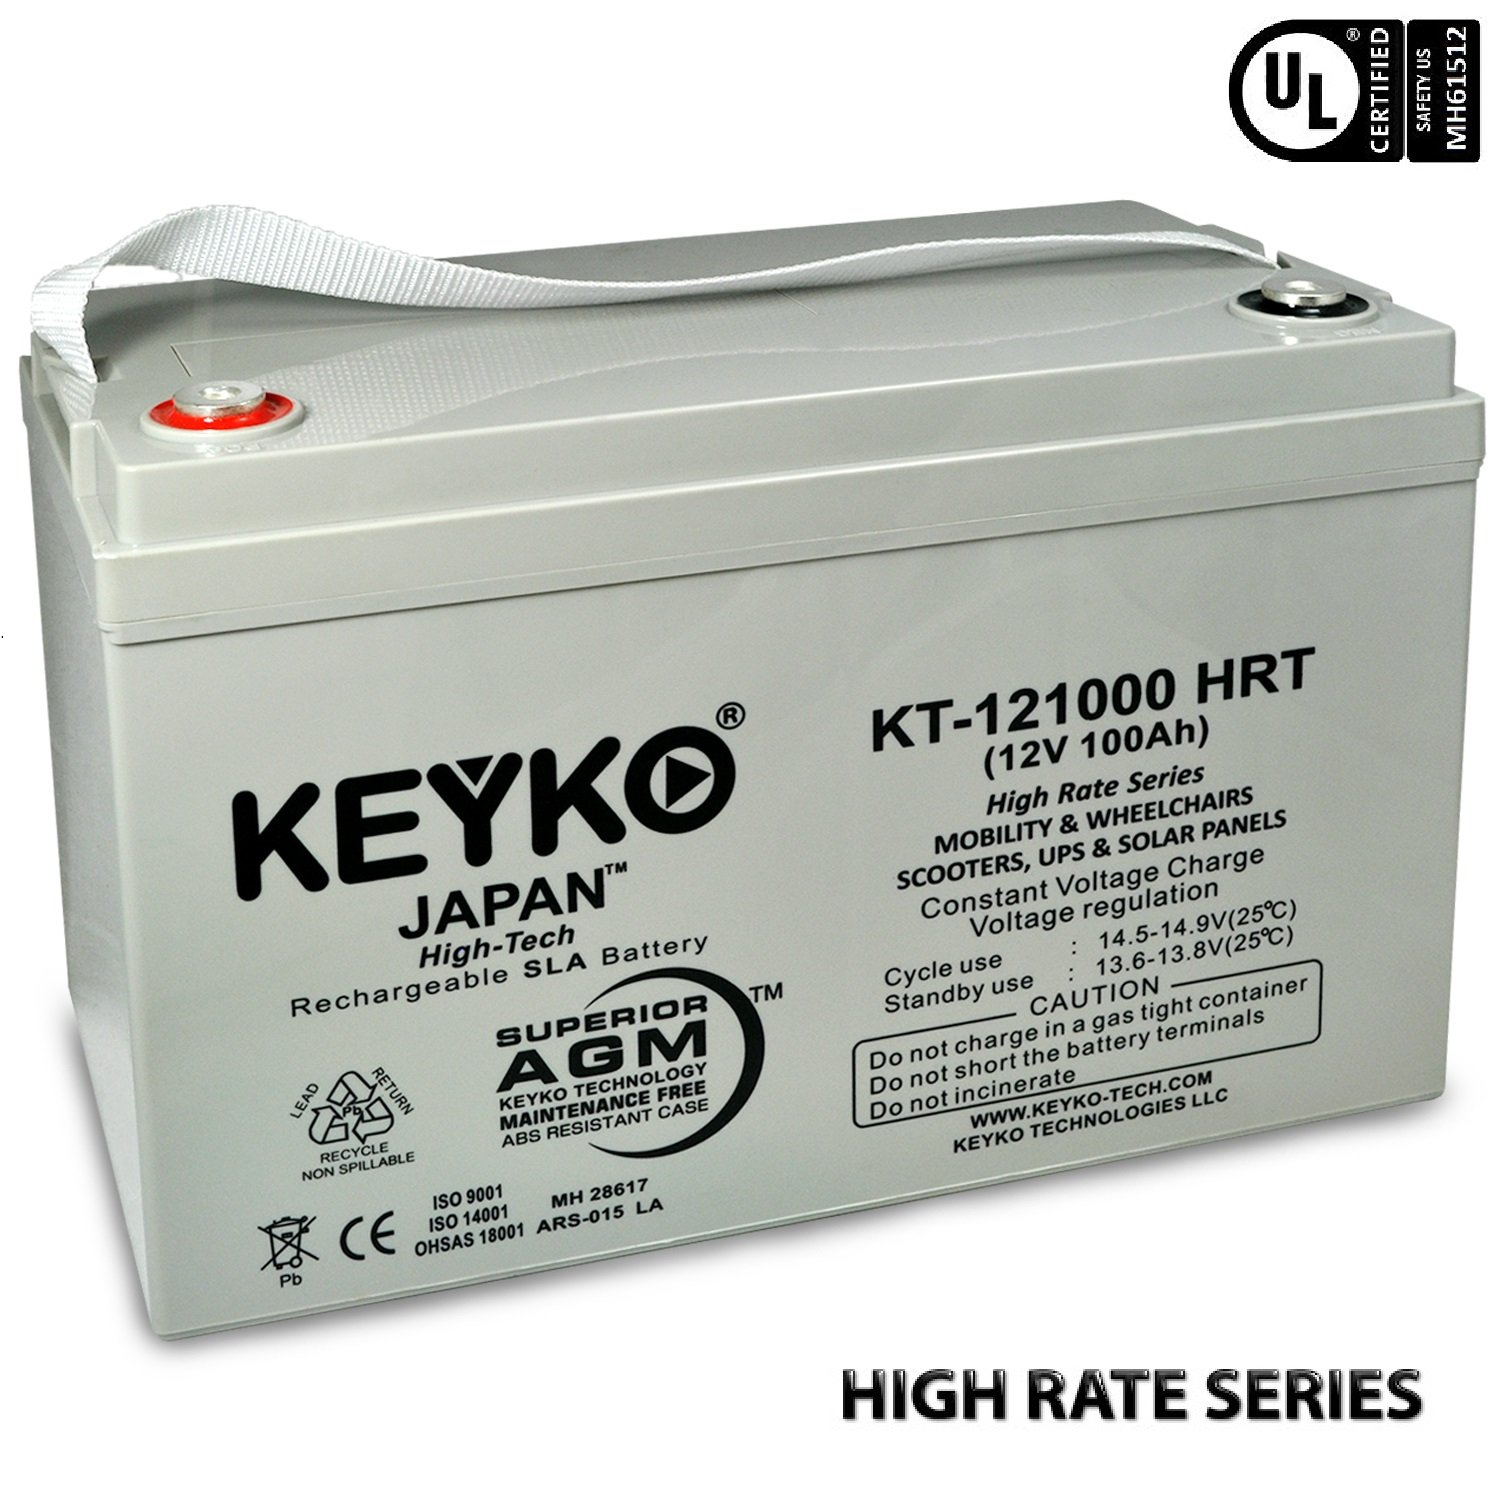 AC Solar Home System SHS12100 12V 100Ah Real 100 Amp AGM / SLA Deep Cycle Battery for Solar Winds Inverters Generators Genuine KEYKO - IT Terminal - T3 by KEYKO